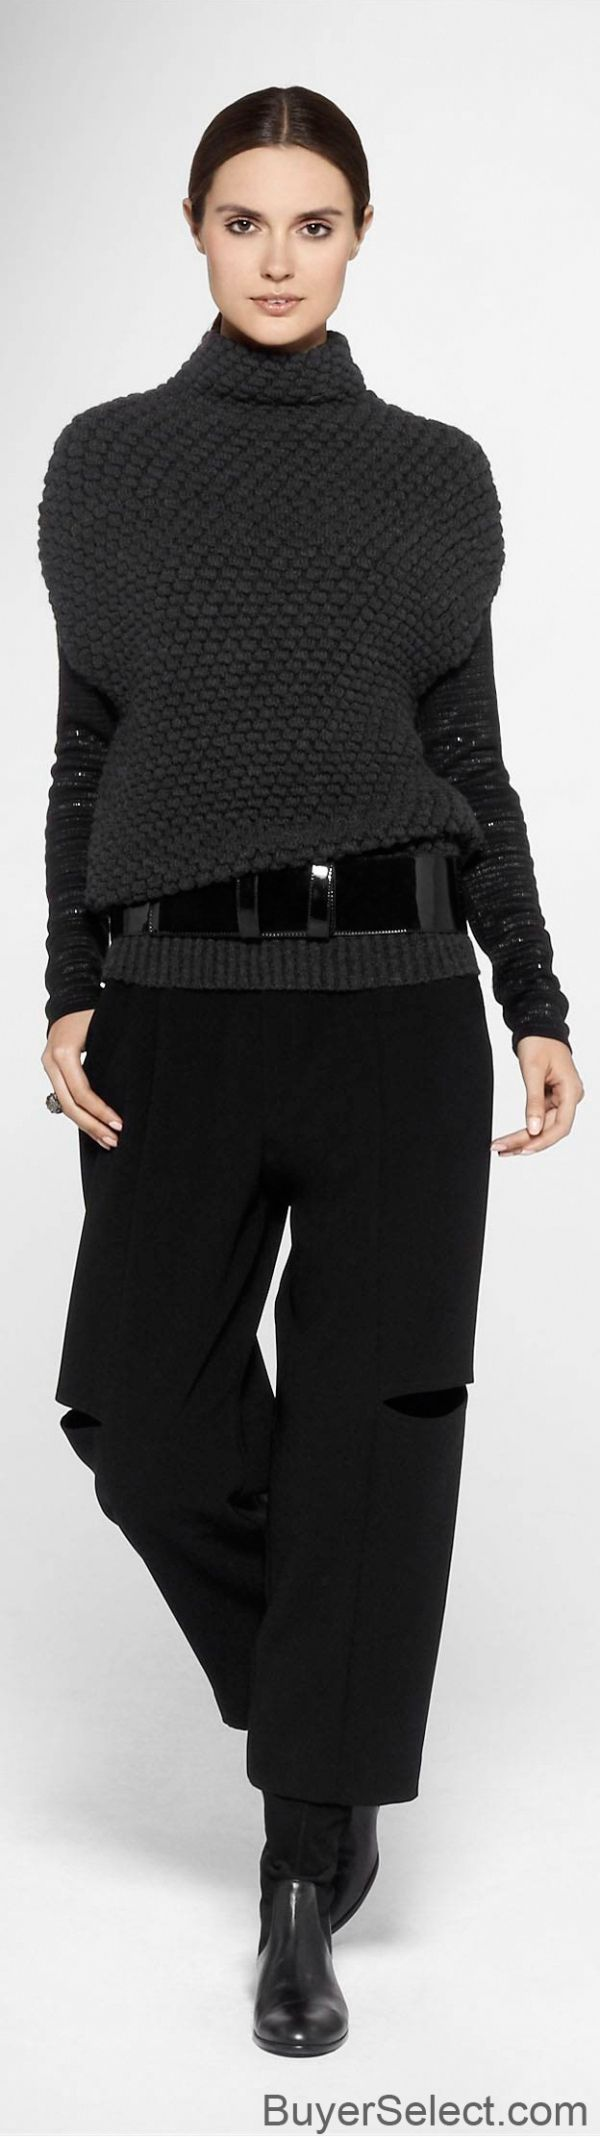 Sara Pacini Women's Designer Collection by dale